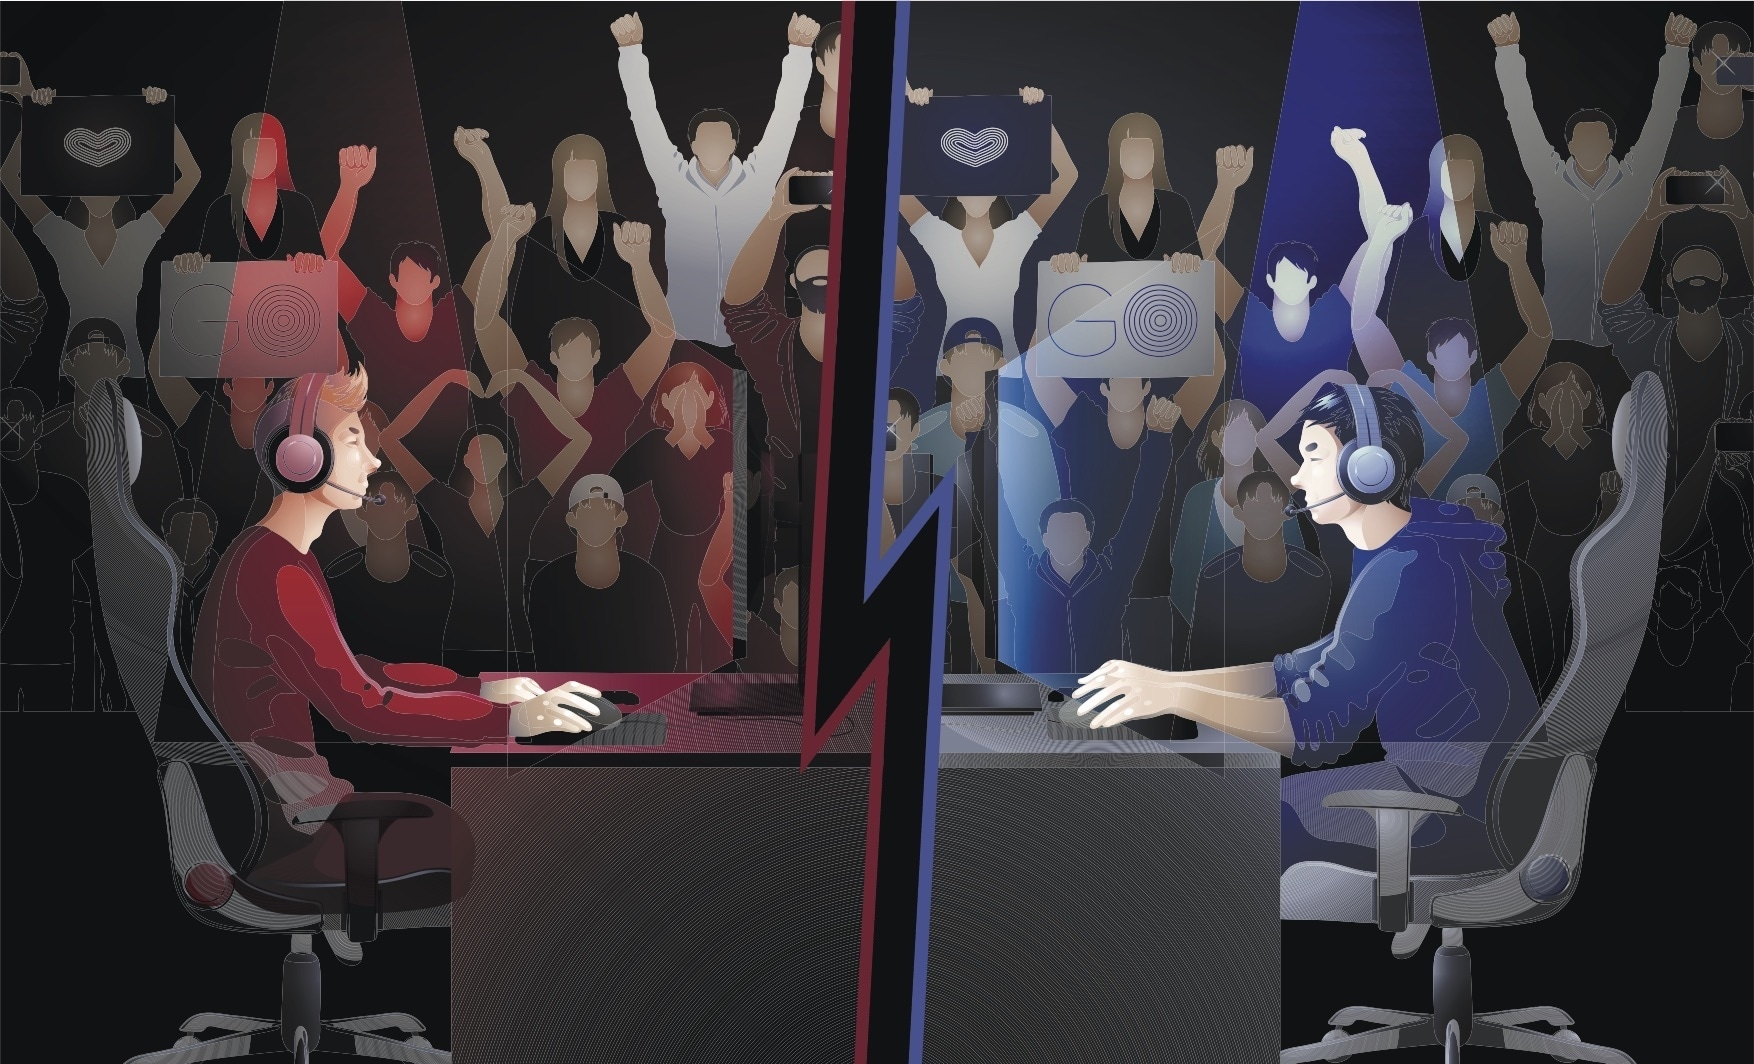 25 Crazy Facts about eSports and the Professional Video Gaming Industry